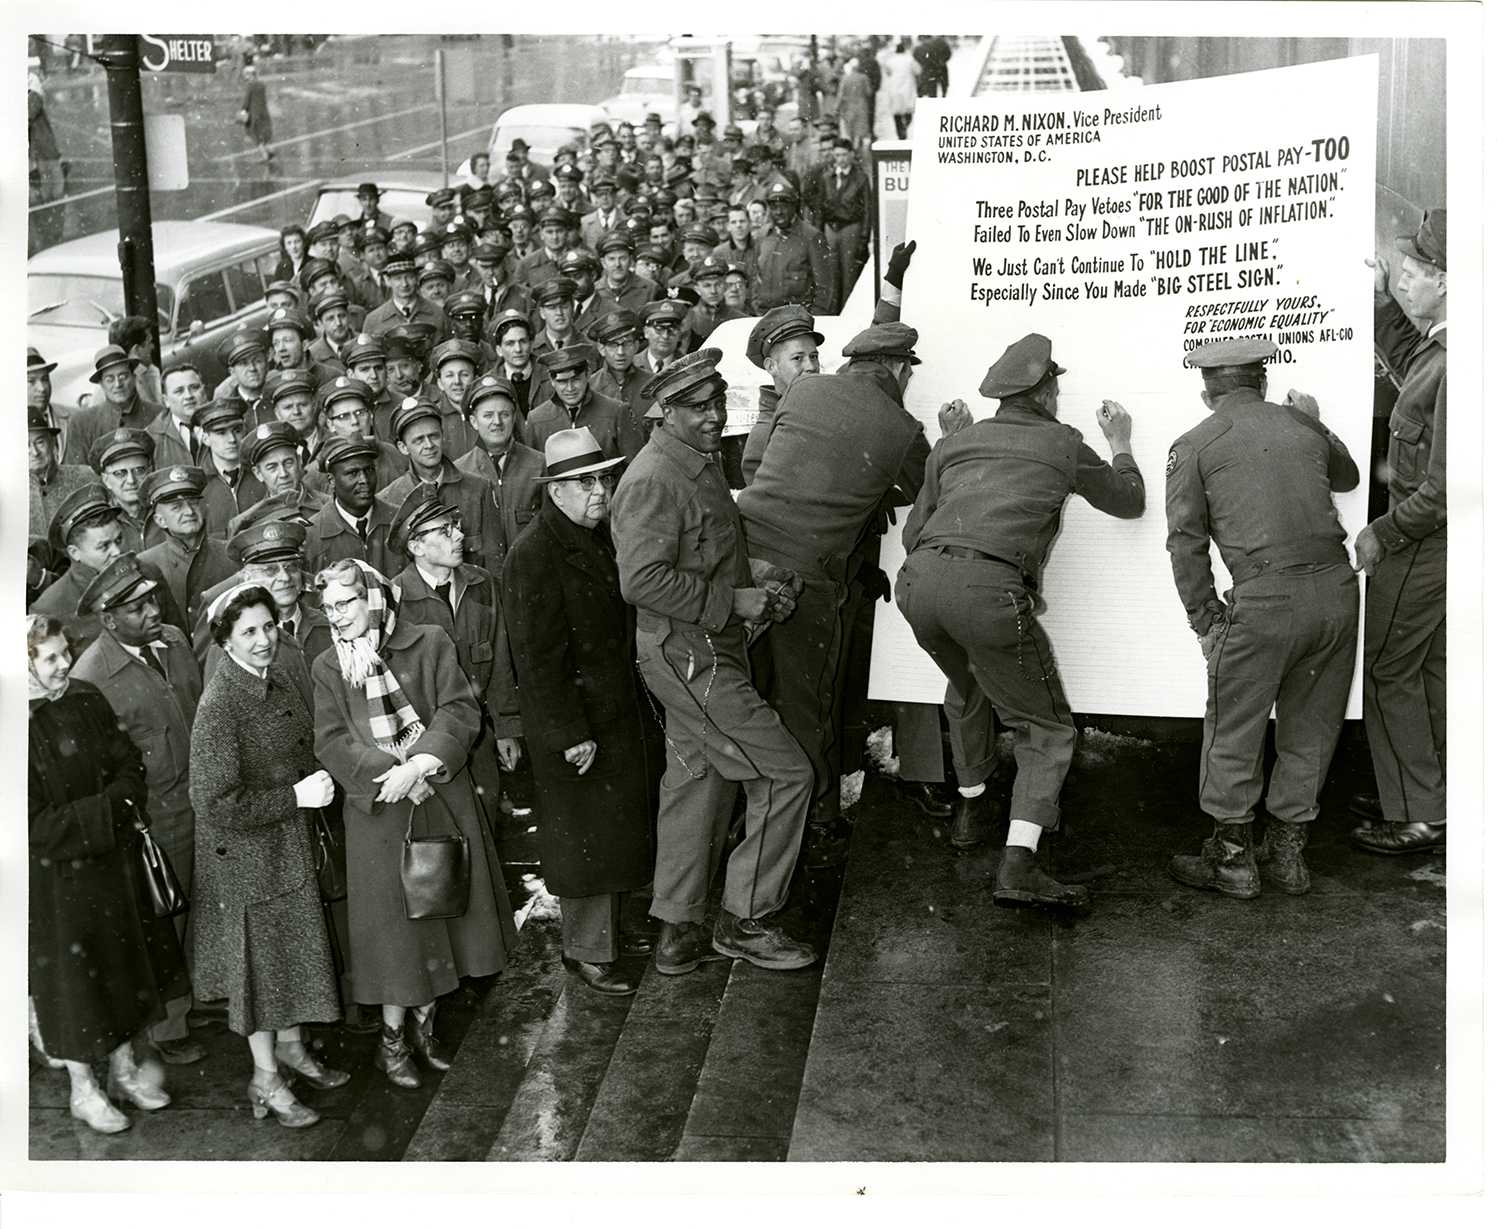 postal workers sign letter to President Richard M. Nixon